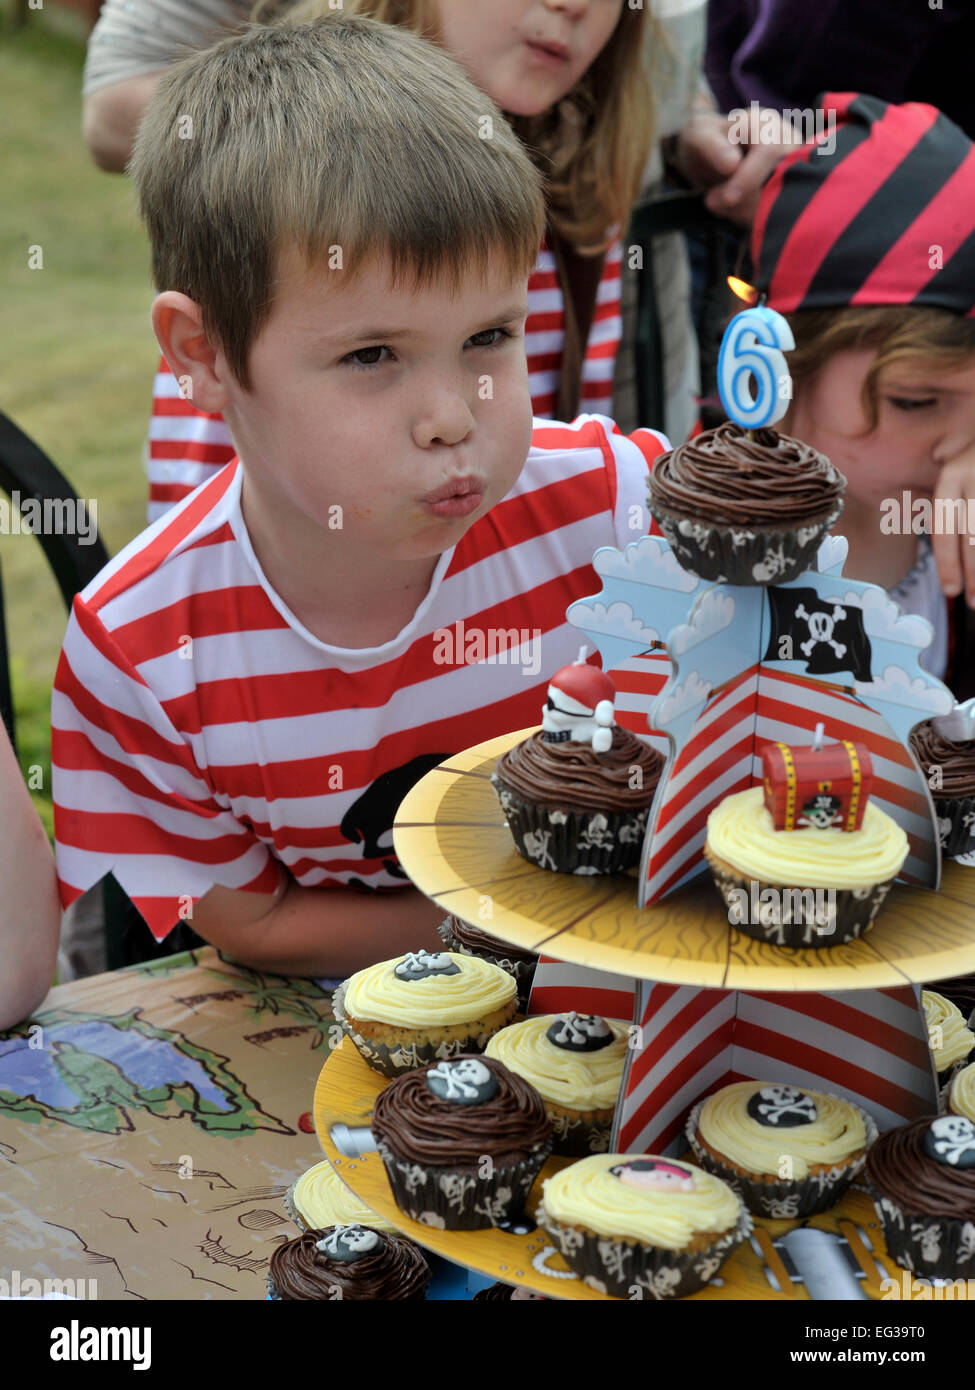 Boy Blowing Out Candles On Cake At Outdoor Pirate Birthday Party